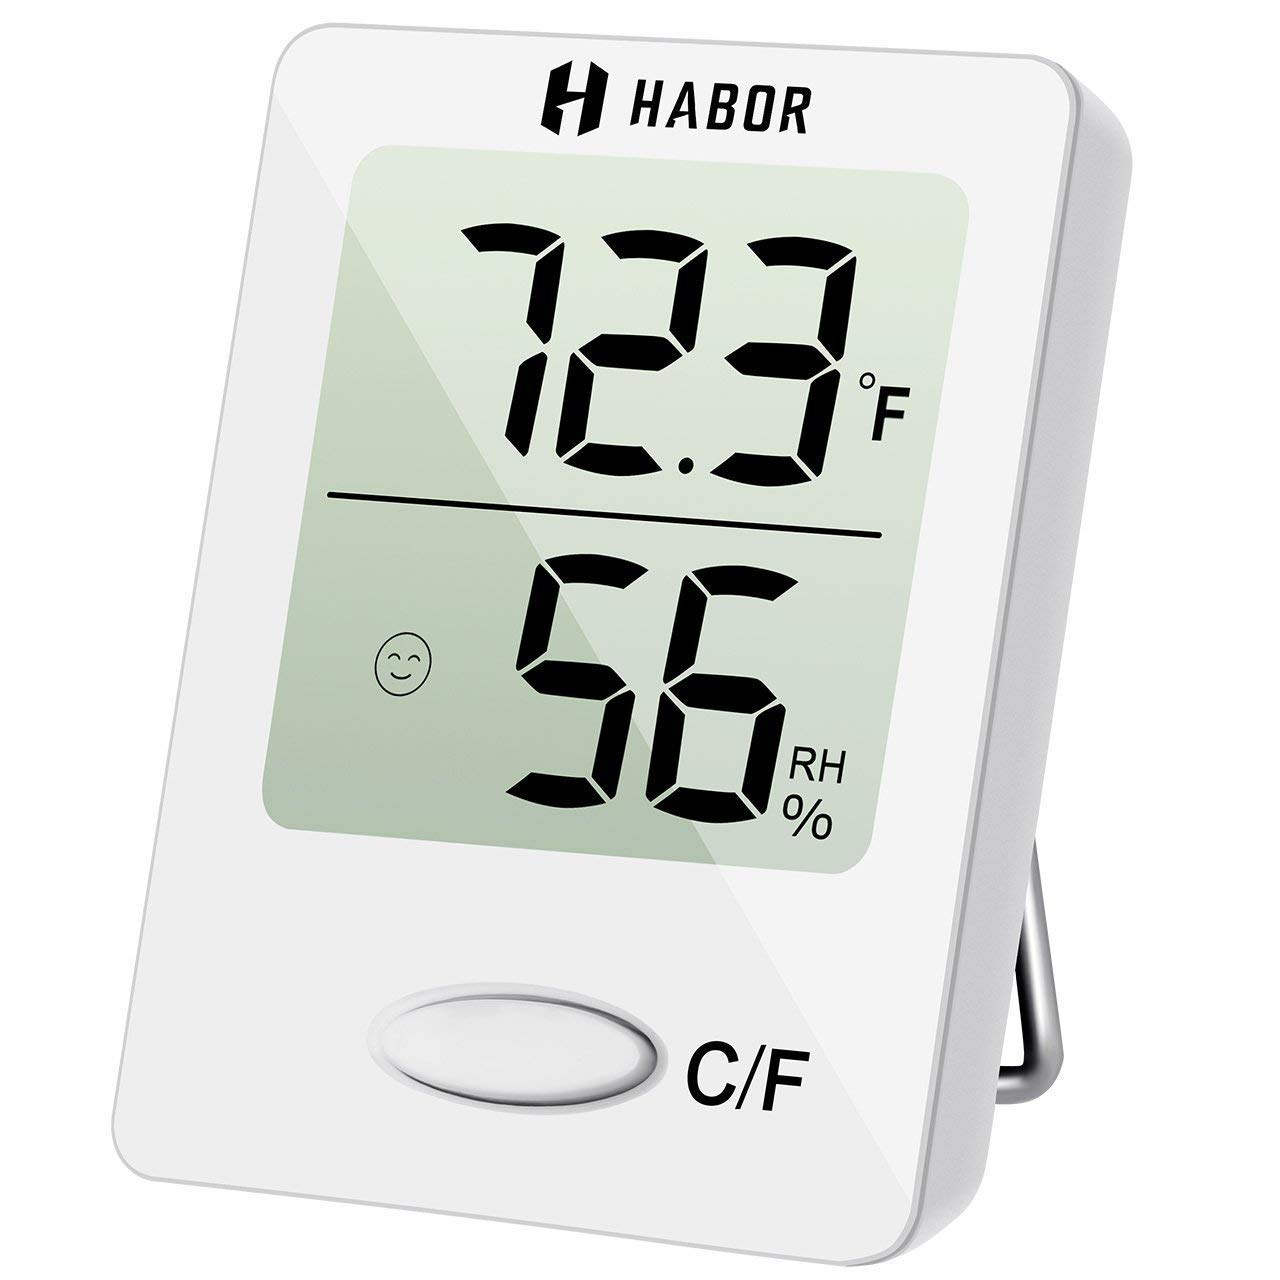 Hygrometer Thermometer,Habor Digital Hygrometer Indoor Outdoor Thermometer,Air Humidity Monitor with Temperature Gauge Humidity Meter, LCD Screen Multifunctional Hygrometer for Babyroom,Humidifiers ,Dehumidifiers, Greenhouse ,Basement -White HPHBHM118AW-CA